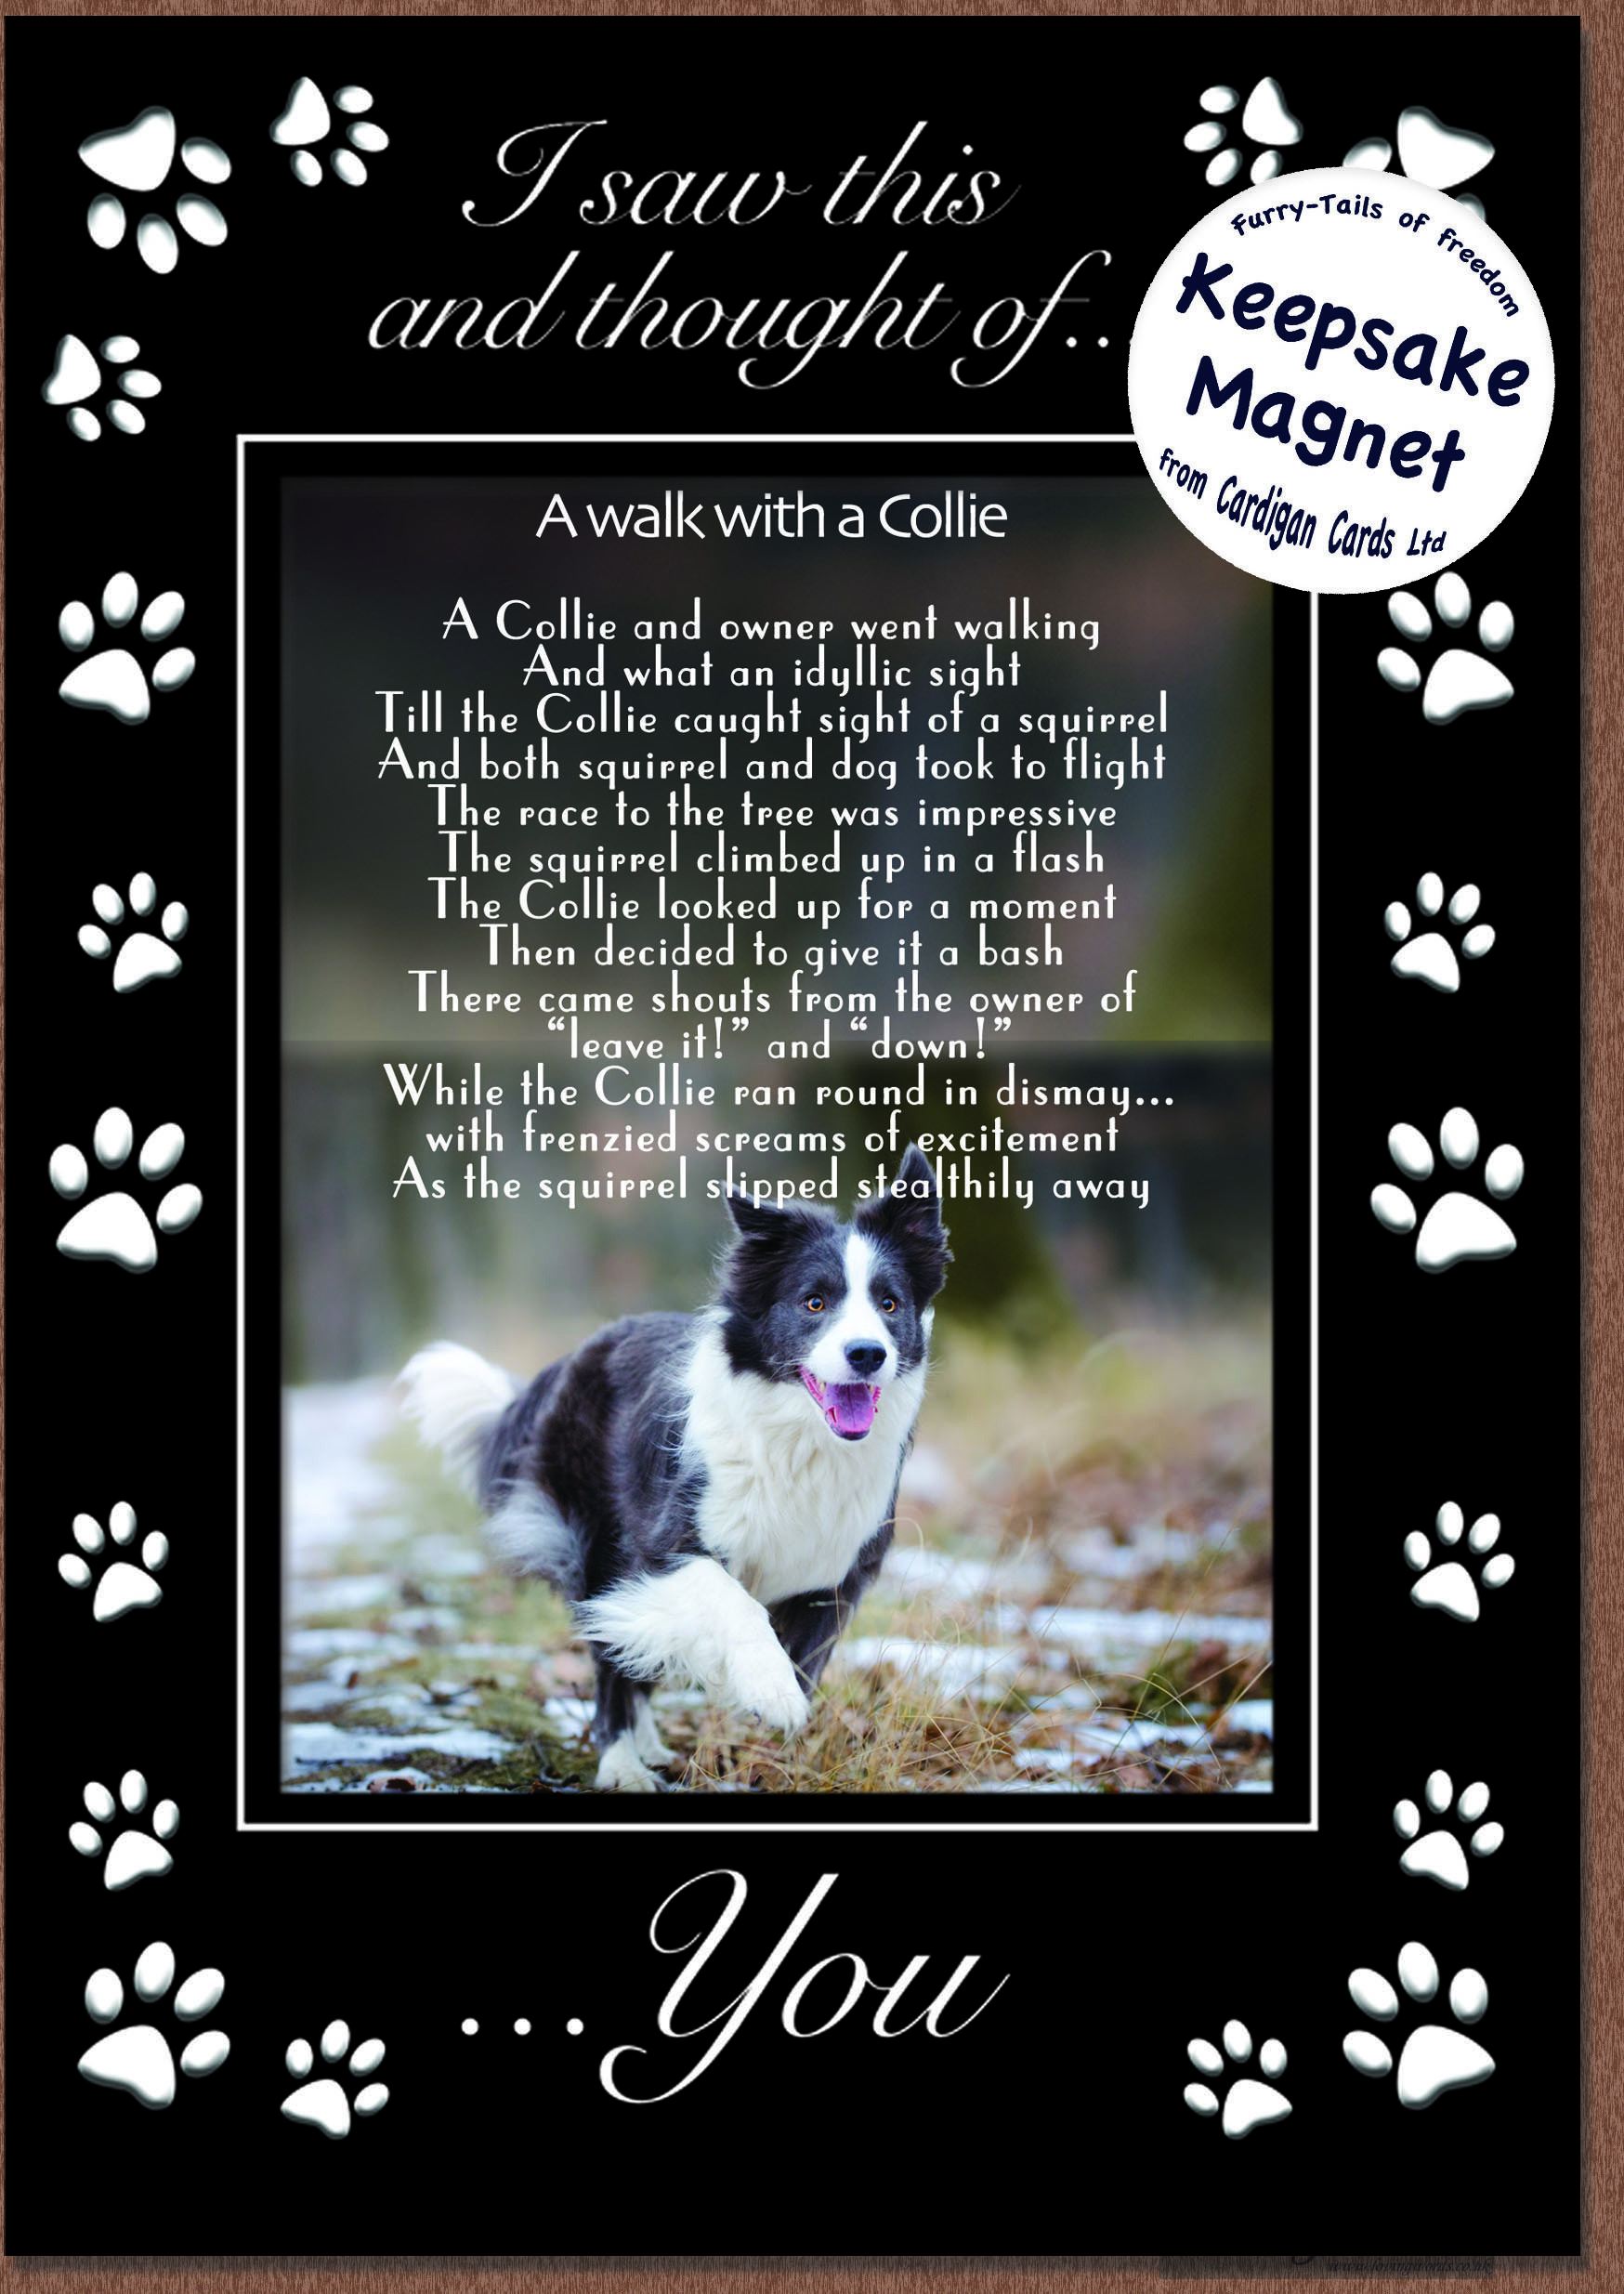 Walk with a collie magnet card greeting cards by loving words personalised greeting cards kristyandbryce Images